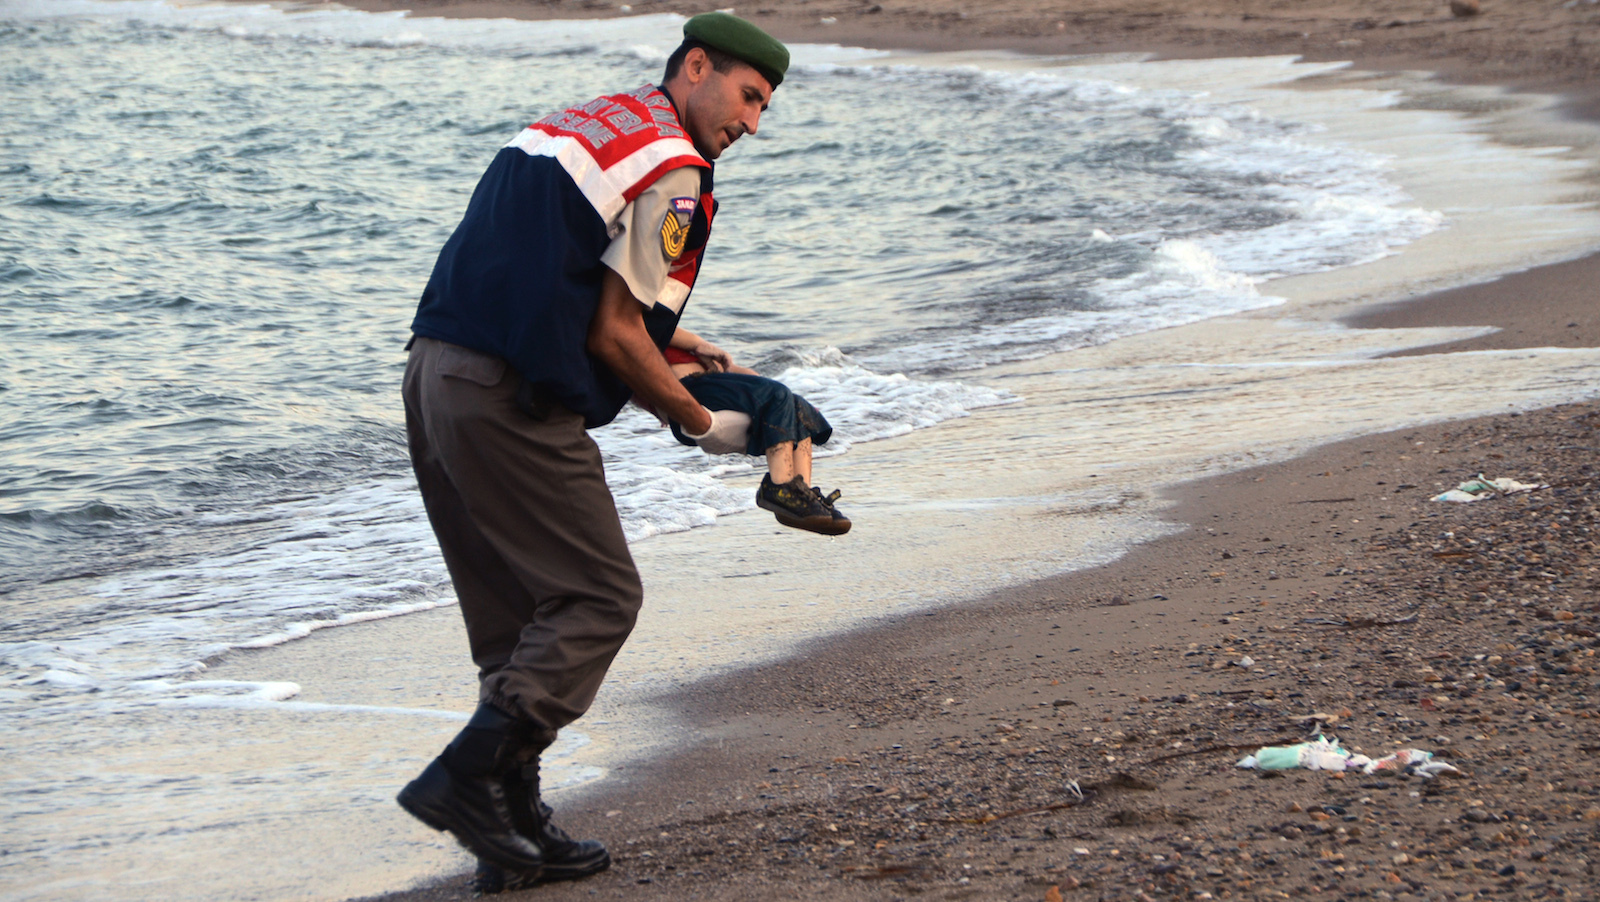 A paramilitary police officer carries the lifeless body of Syrian refugee Alan Kurdi.